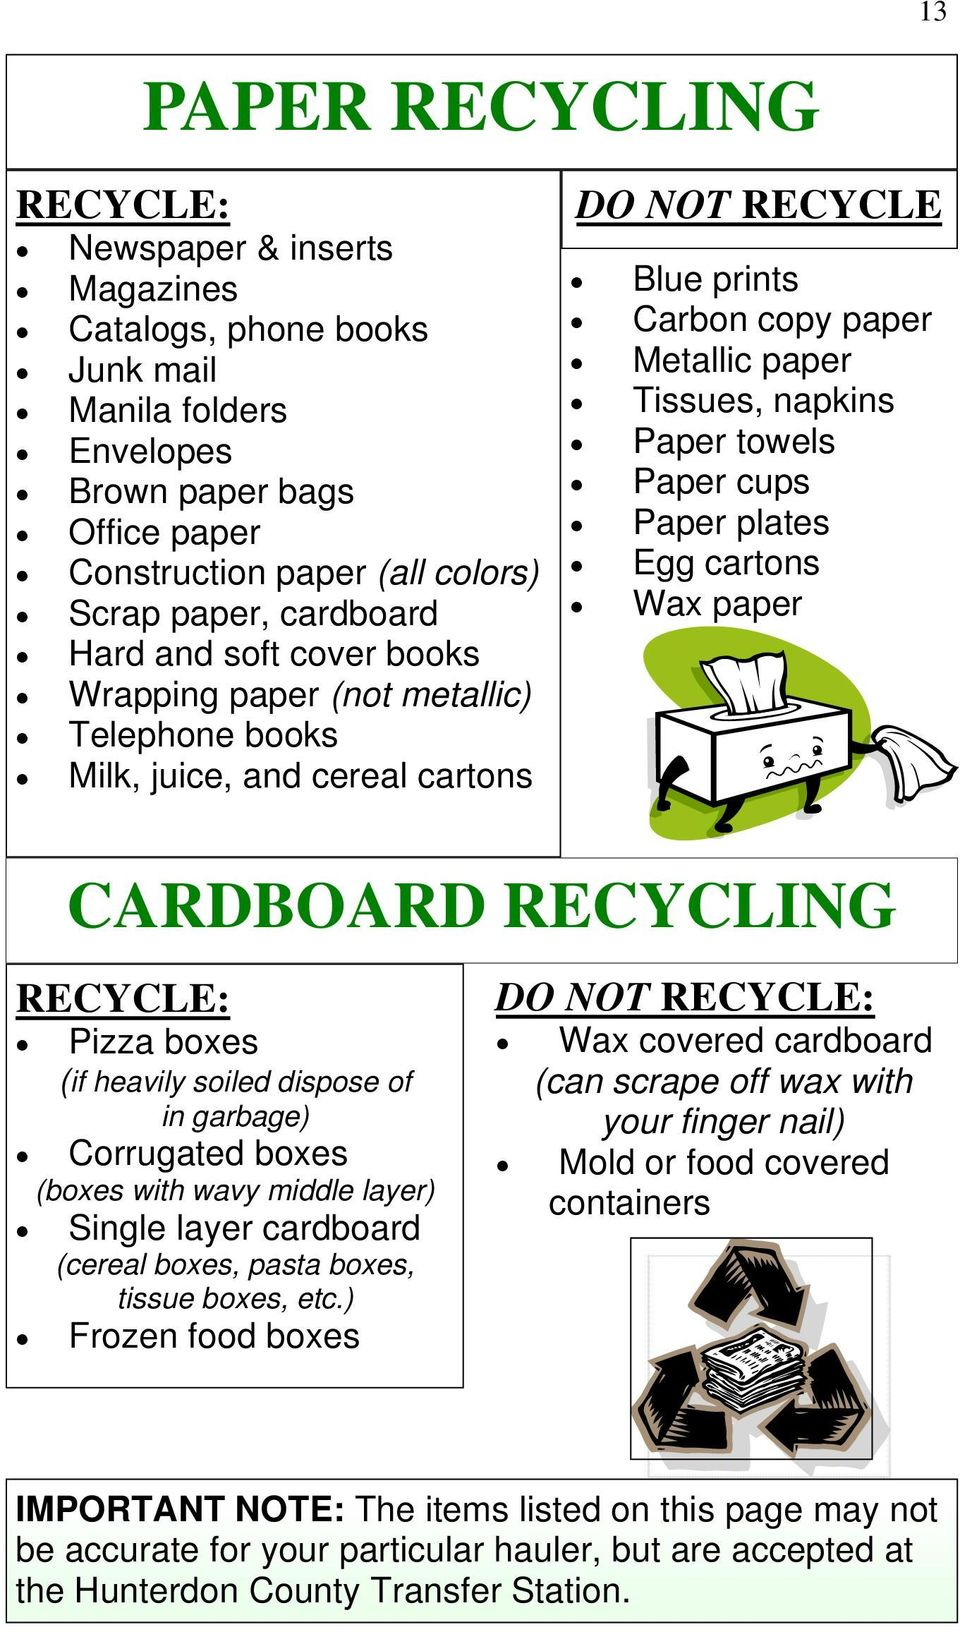 Hunterdon County Recycling And Waste Guide Pdf Molded Circuit Board Equipment Buy Cups Paper Plates Egg Cartons Wax Cardboard Recycle Pizza Boxes If Heavily